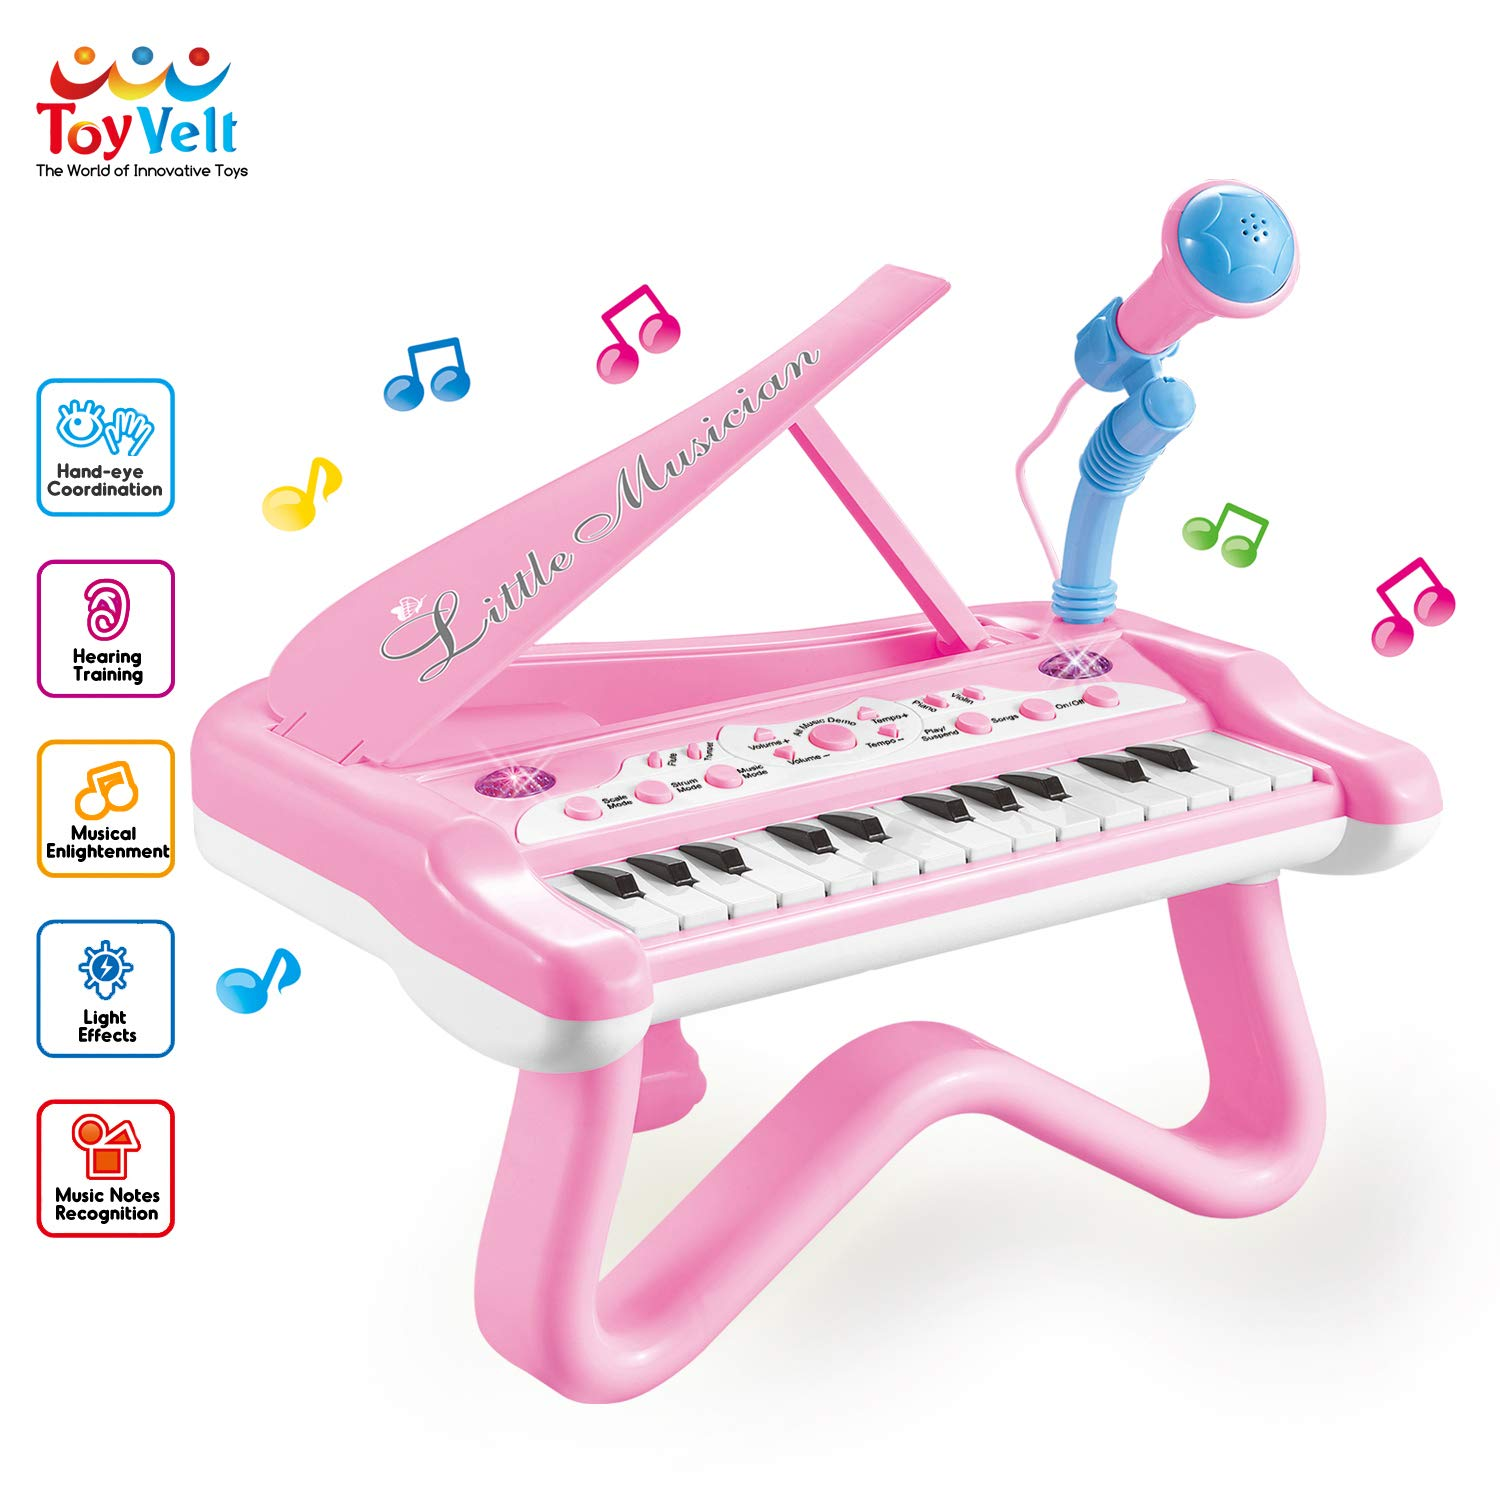 ToyVelt Toy Piano for Toddler Girls - Cute Piano for Kids with Built-in Microphone & Music Modes - Best Birthday Gifts for 2 3 4 5 Year Old Girls - Educational Keyboard Musical Instrument Toys by ToyVelt